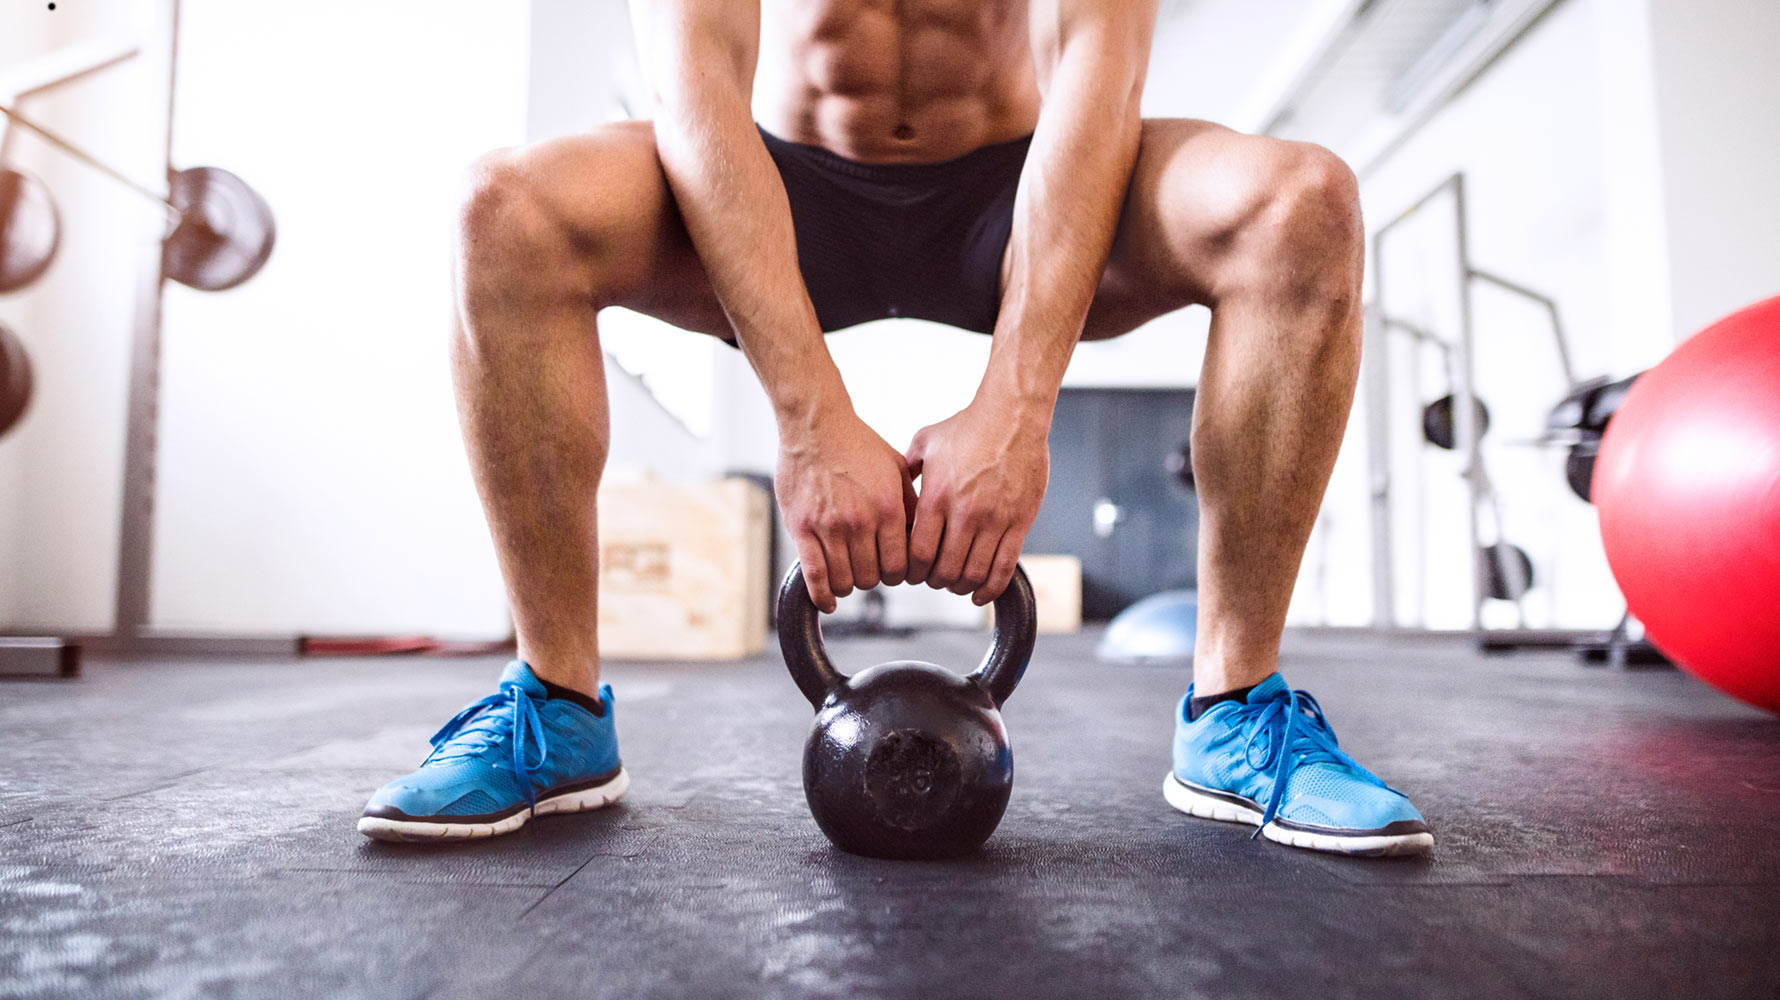 The Best CrossFit Shoes for Men of 2021